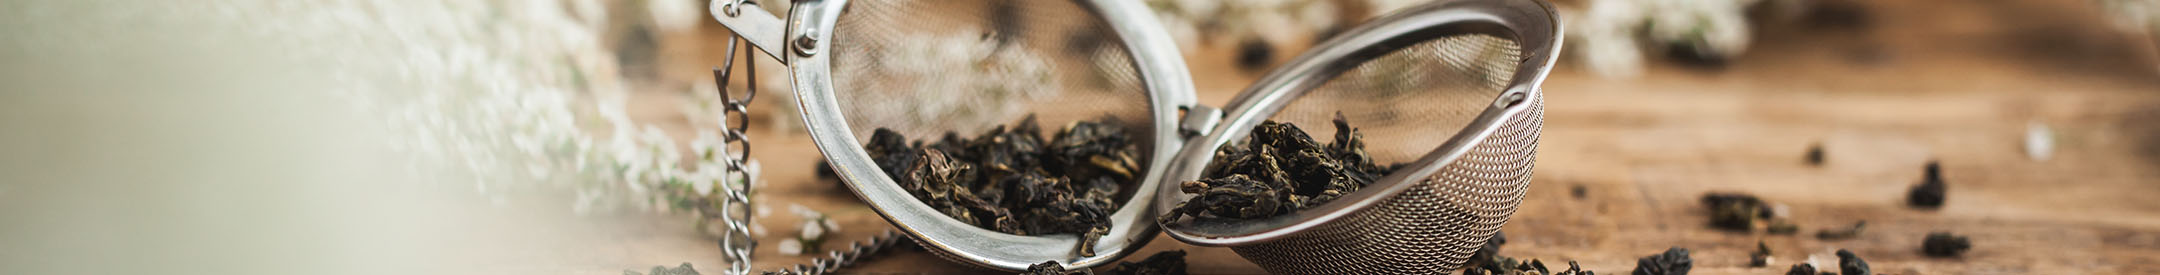 Browse the finest Oolong Tea online today